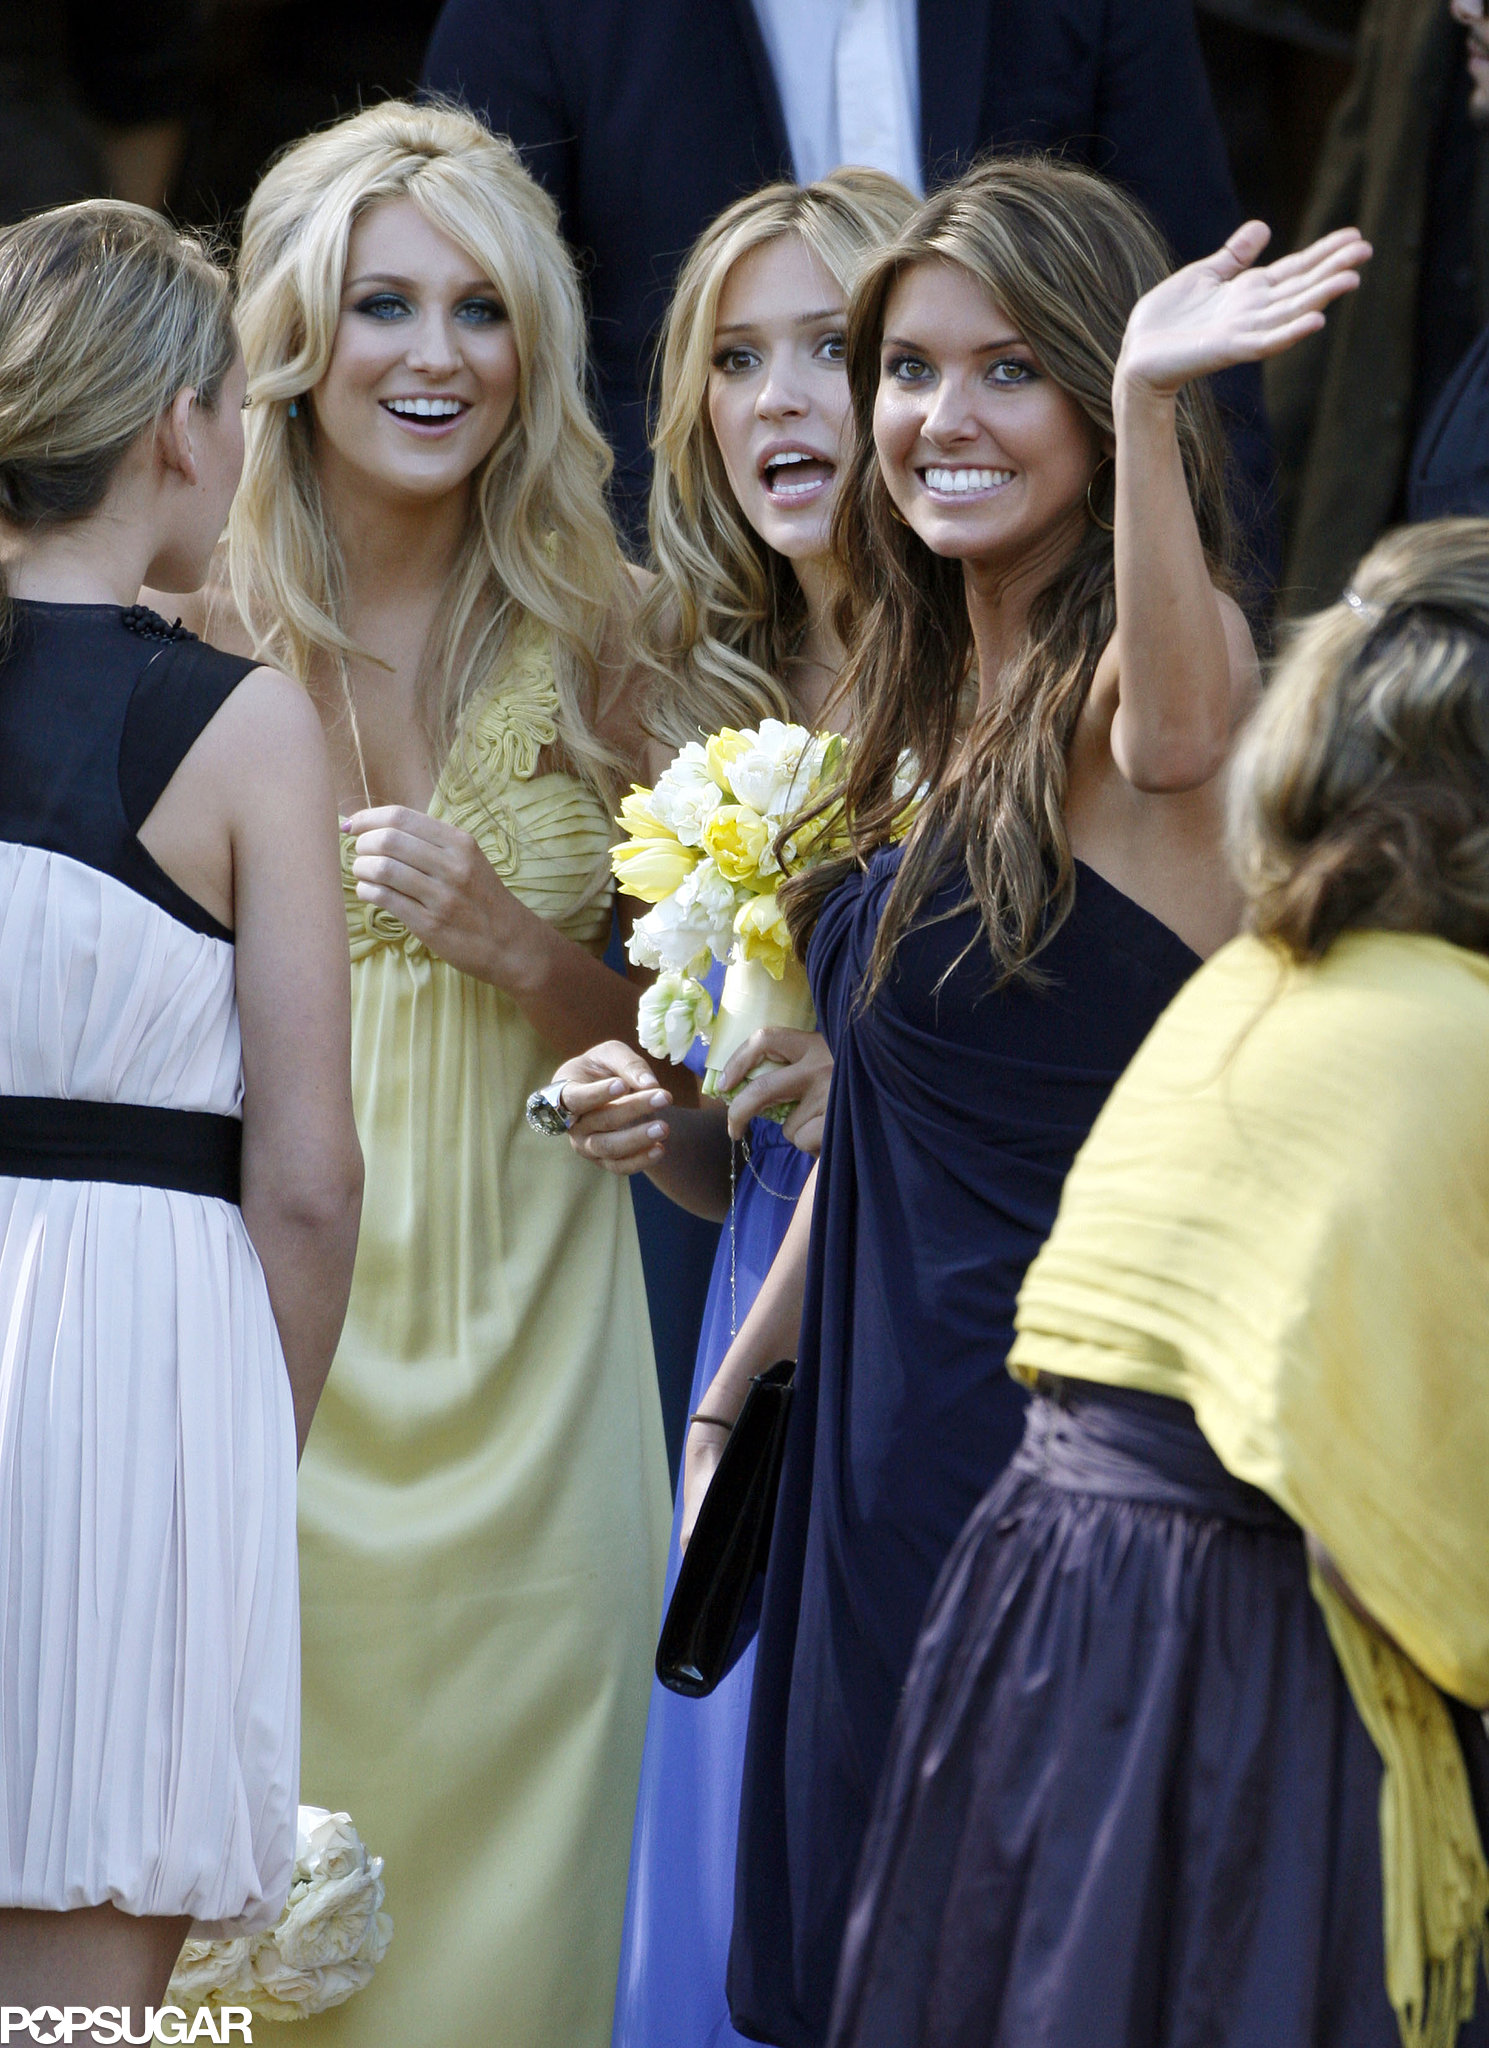 Stephanie Pratt, Kristin Cavallari, and Audrina Patridge smiled at Heidi Montag and Spencer Pratt's LA nuptials in April 2007.